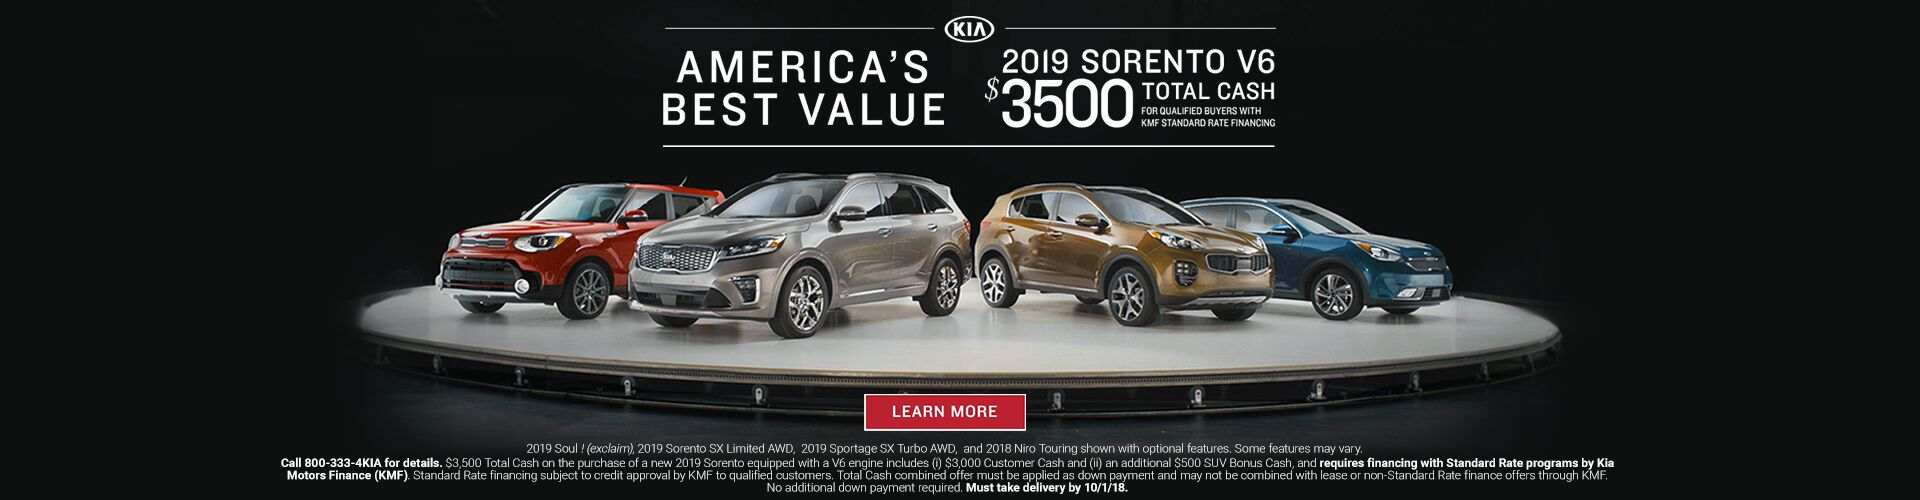 America's Best Value 2019 Sorento Fuccillo Kia of Schenectady